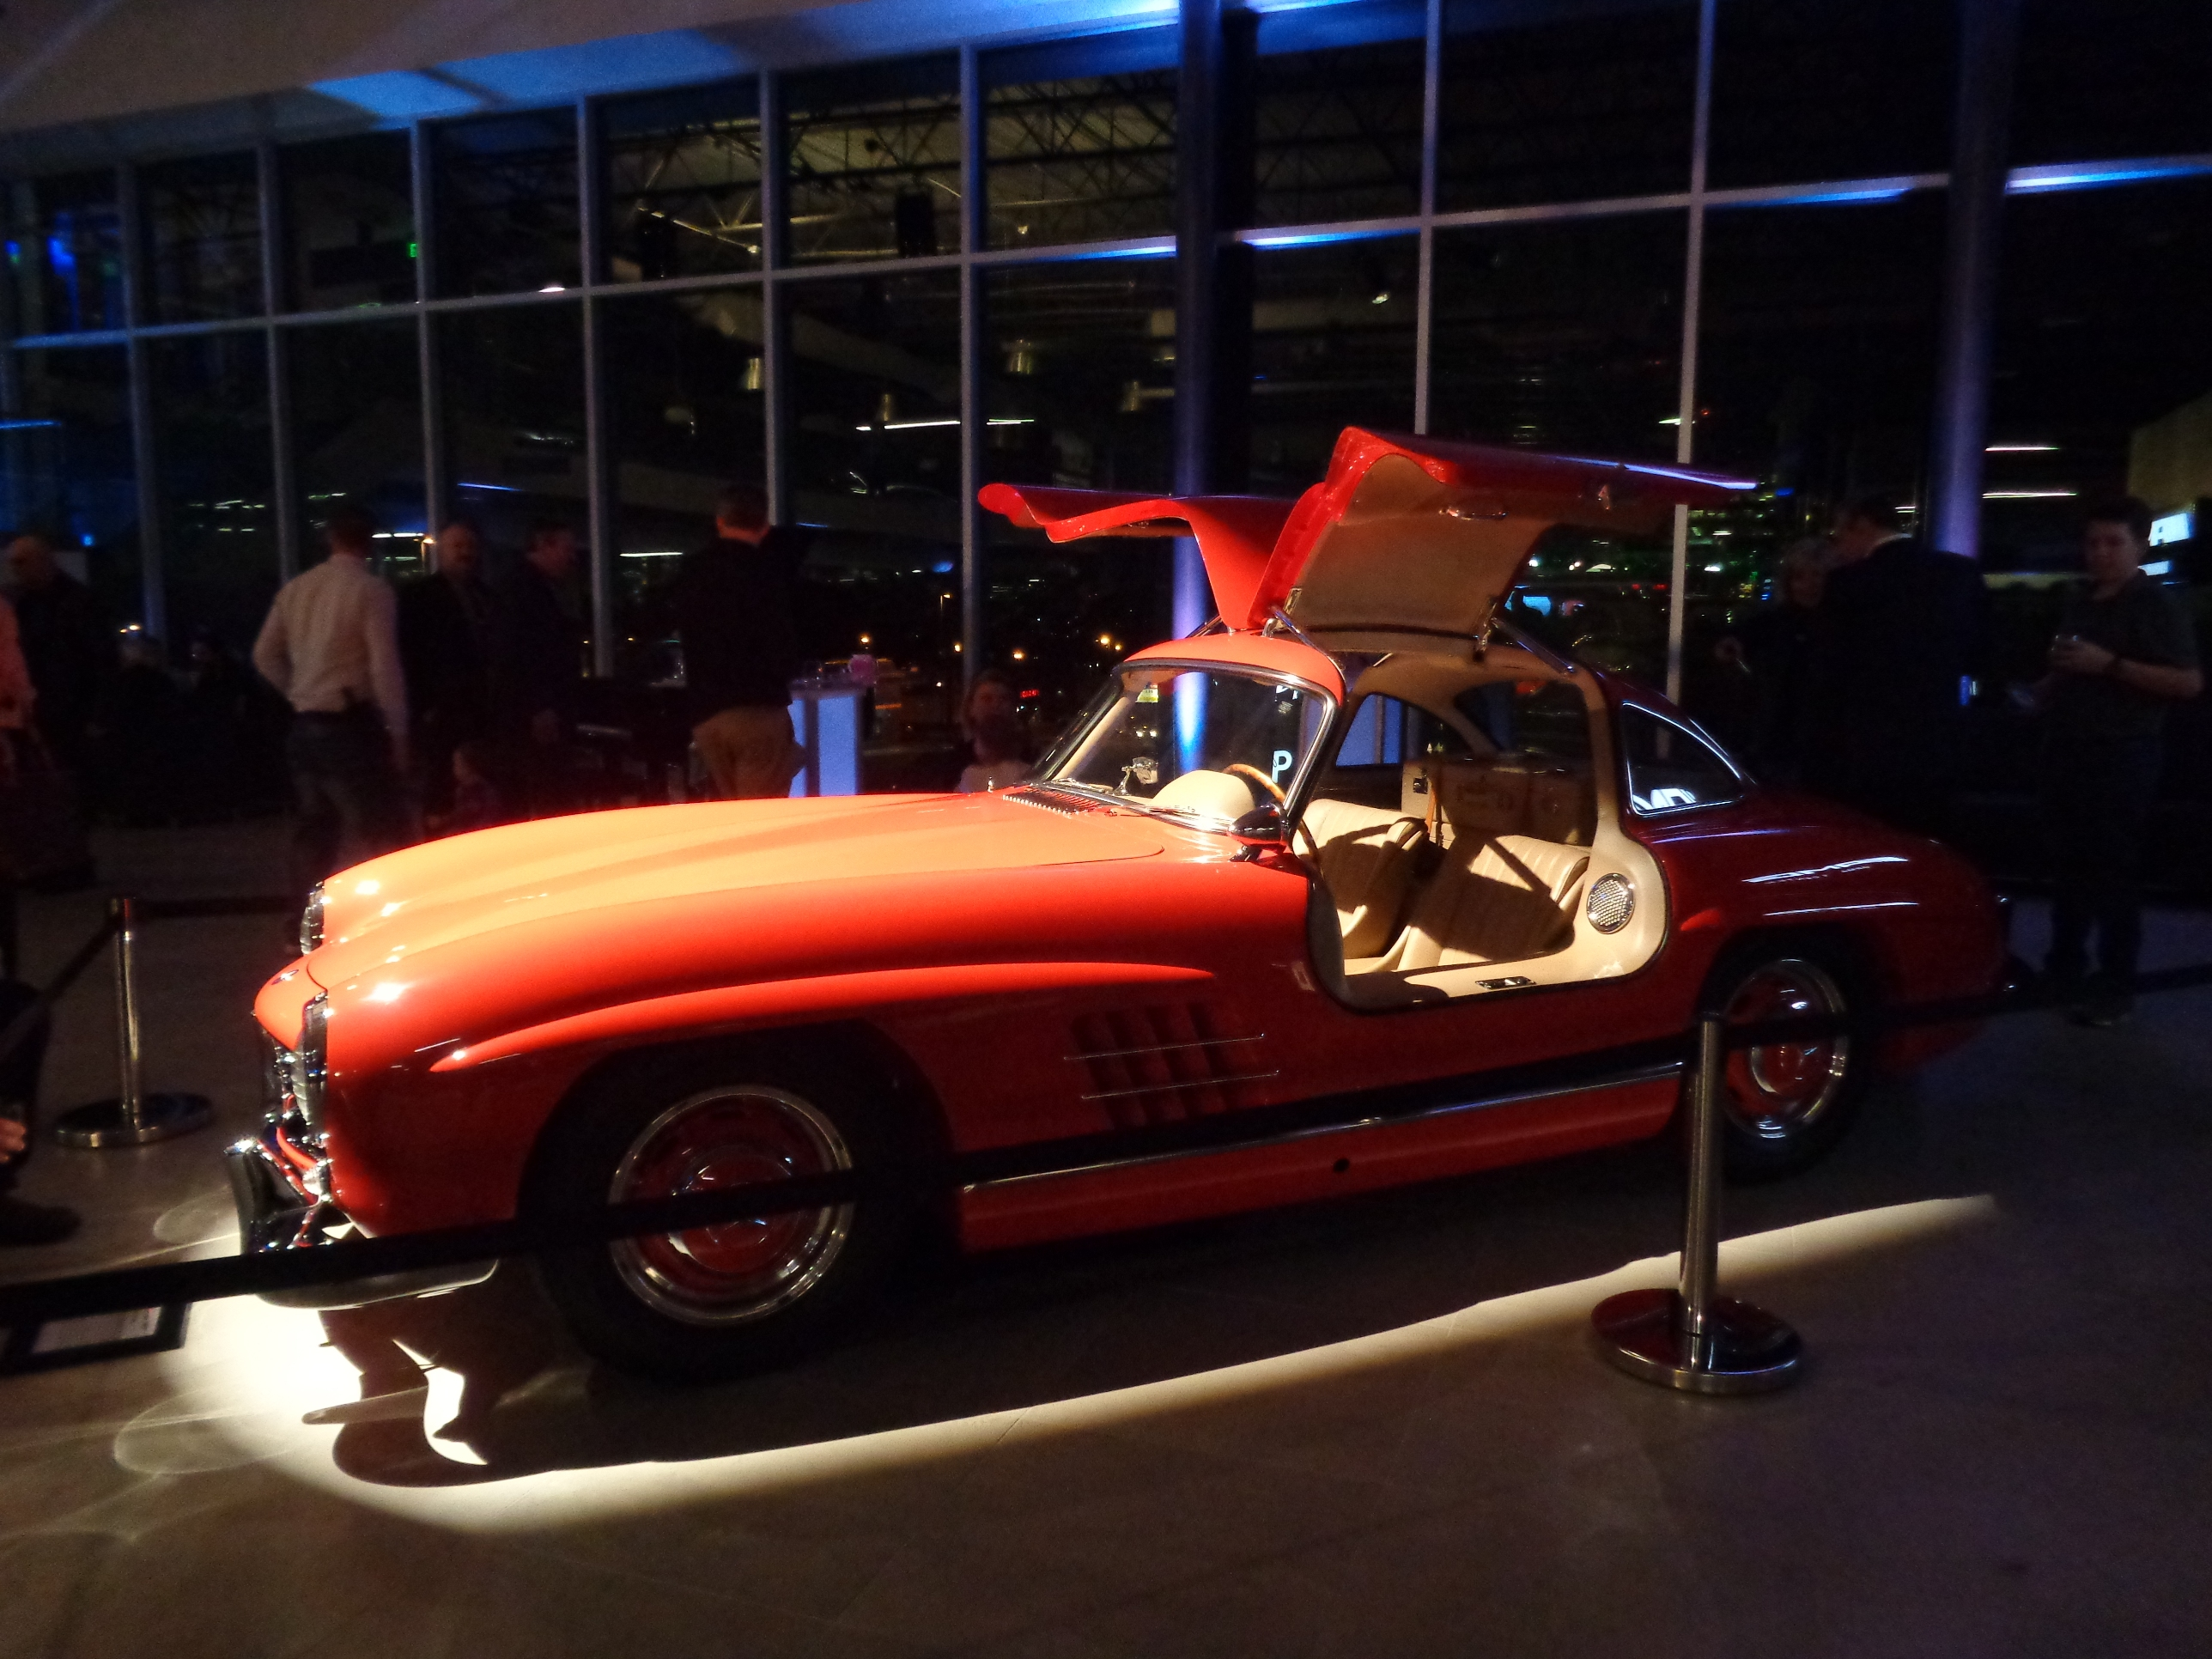 Bmw Dealership Denver >> Titan shines at Benz/BMW grand opening – Bud Wells